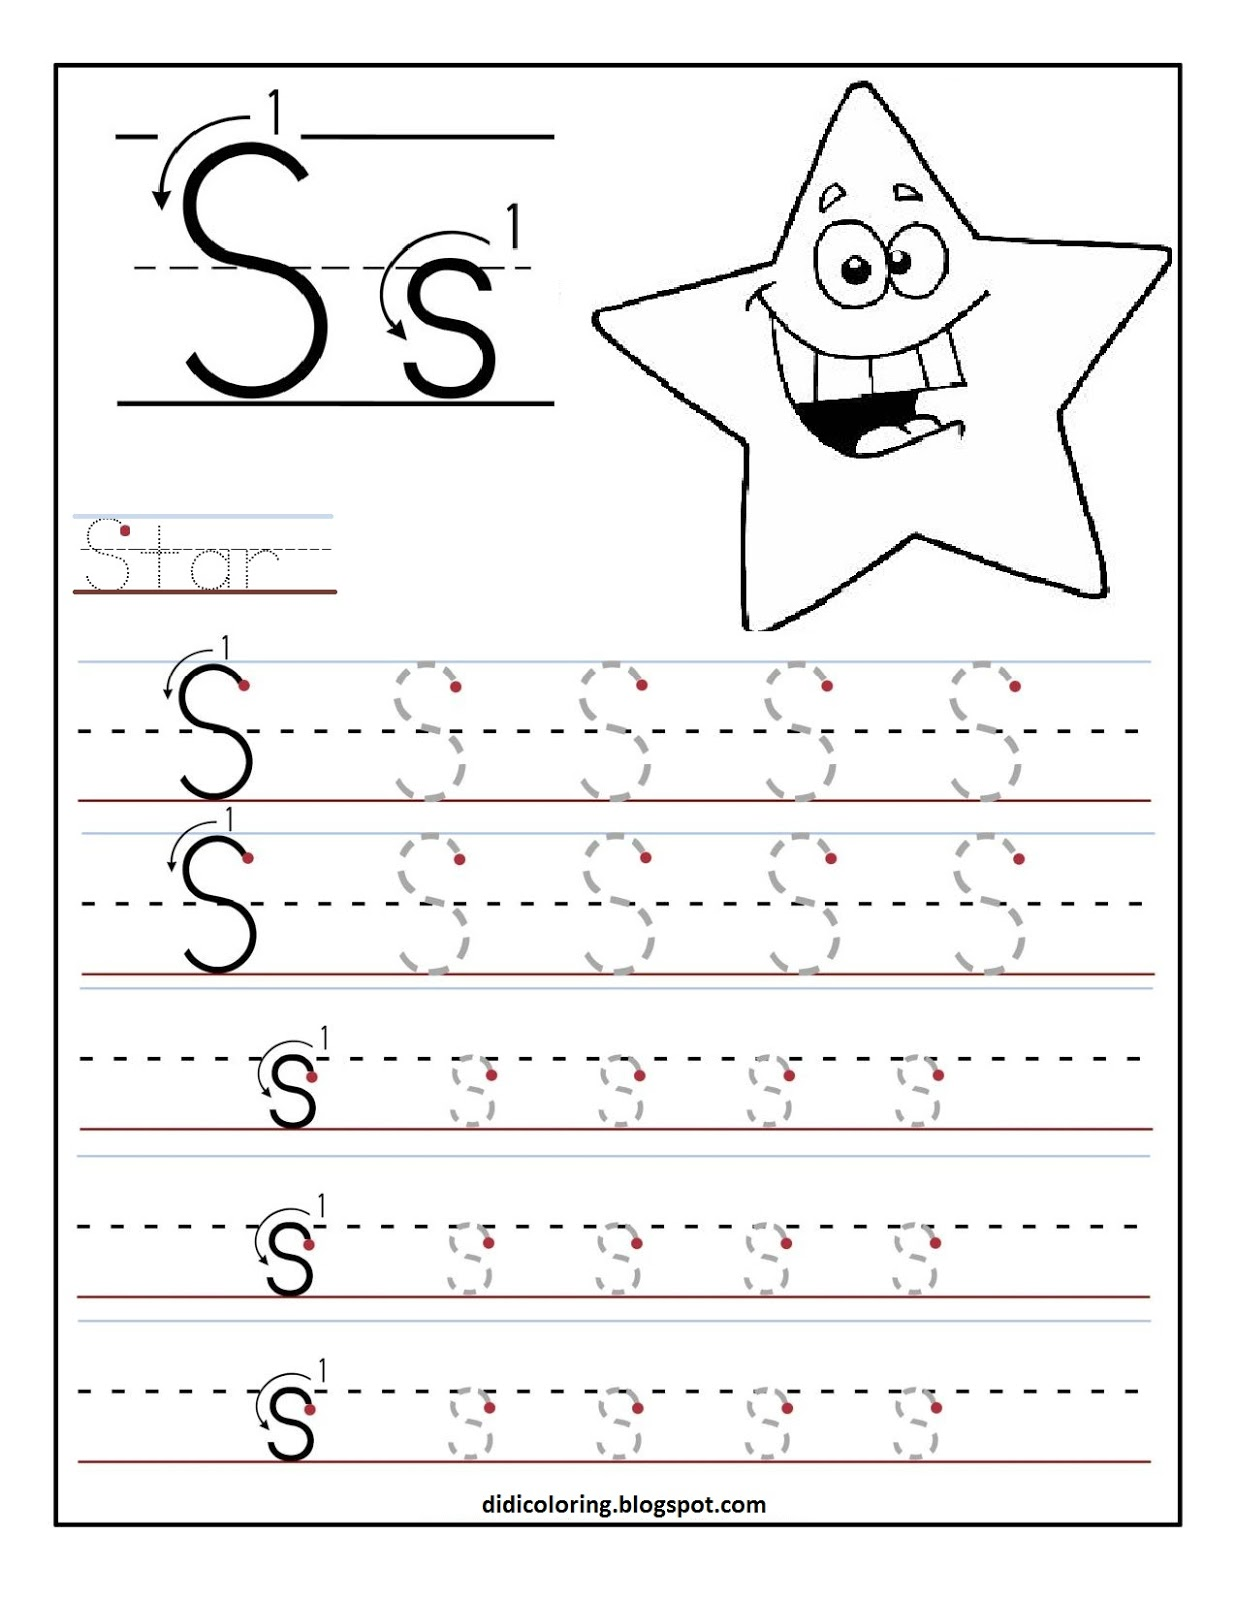 - Didi Coloring Page: Free Printable Worksheet Letter S For Your